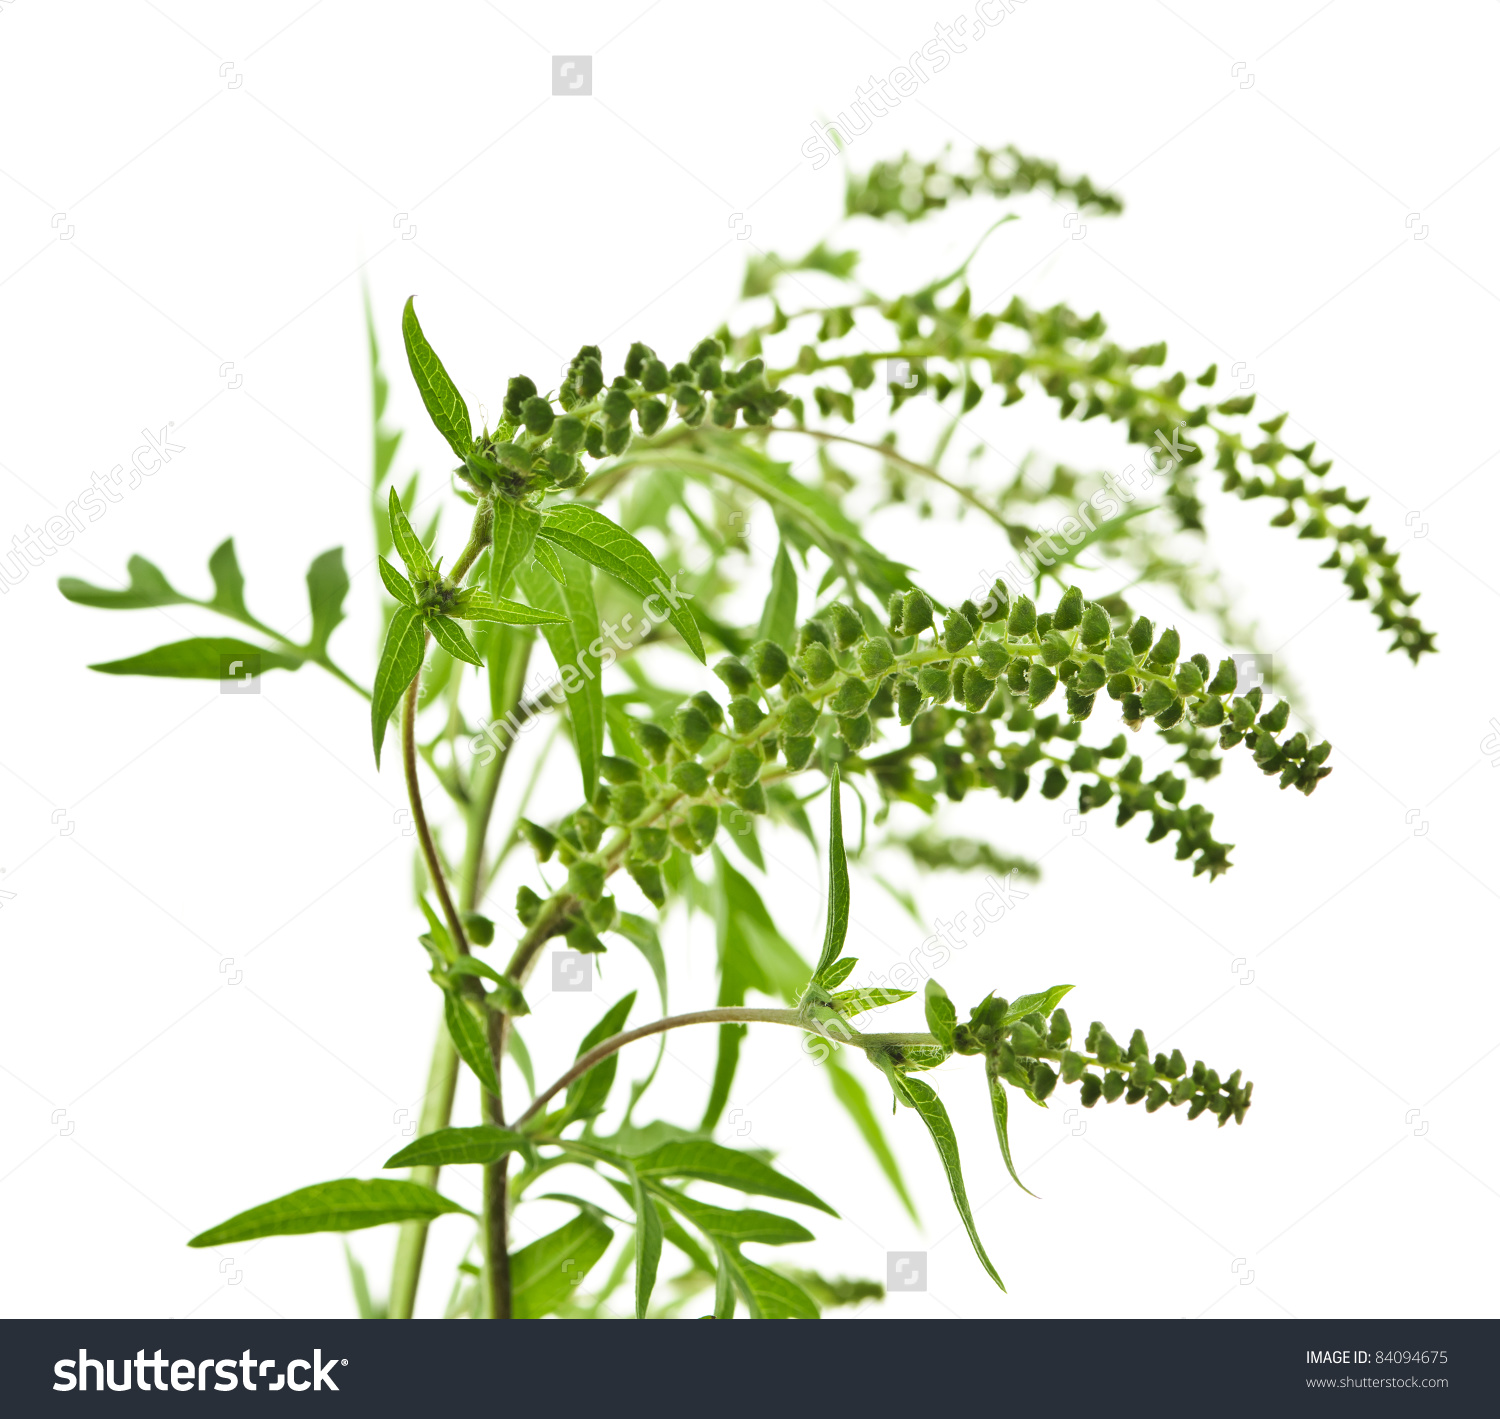 Ragweed Plant In Allergy Season Isolated On White Background.